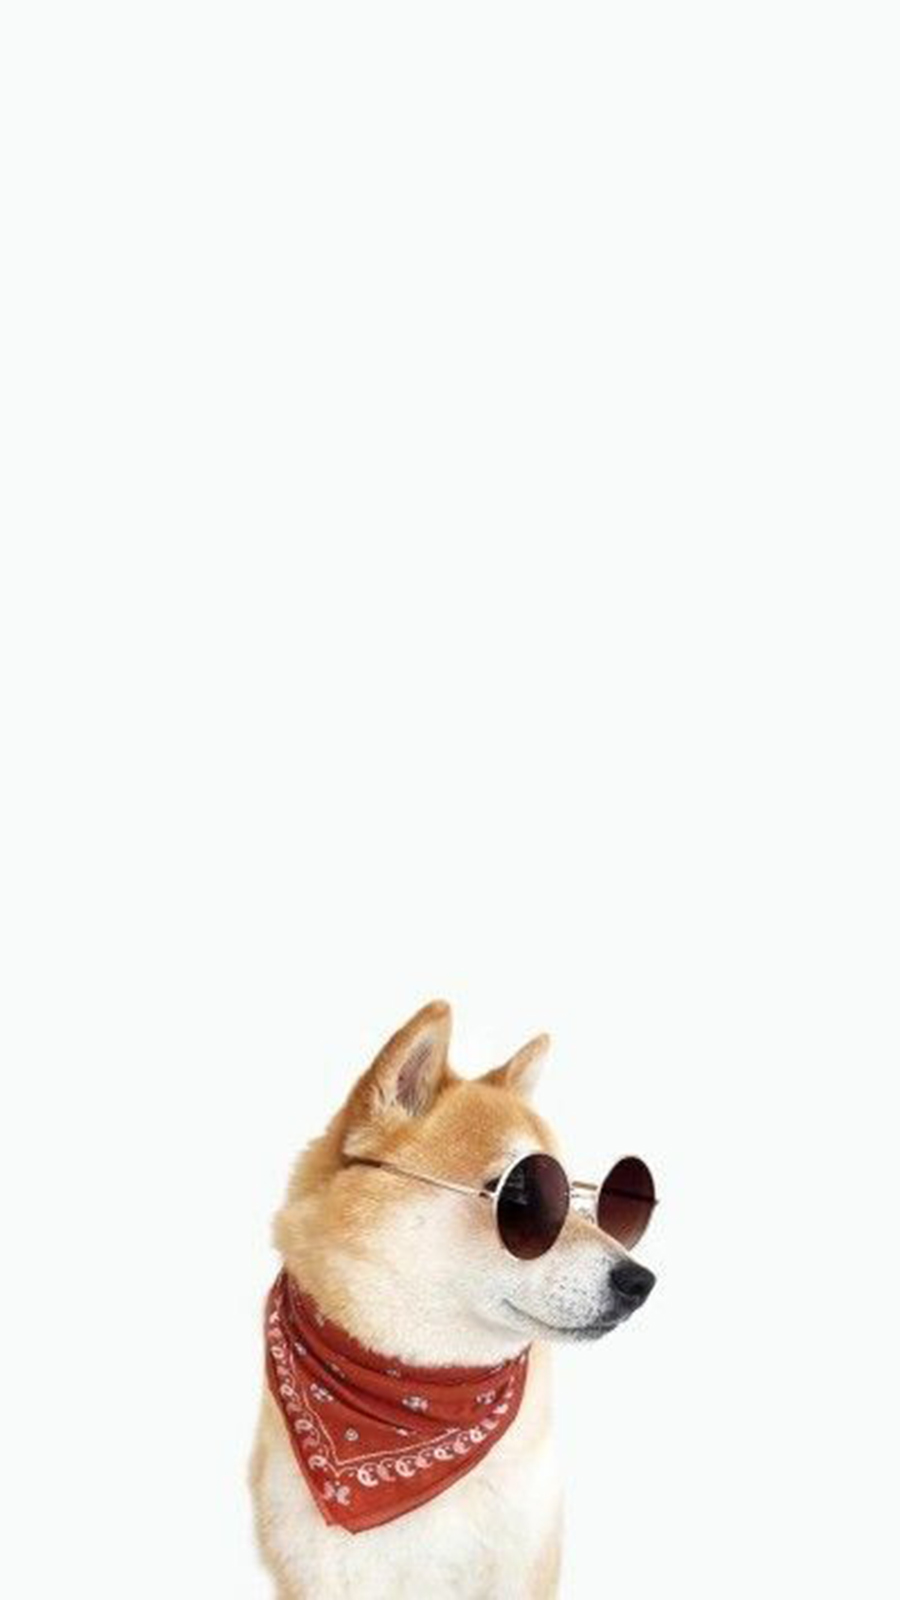 Dog Style Wallpapers Free Download – Best Wallpapers